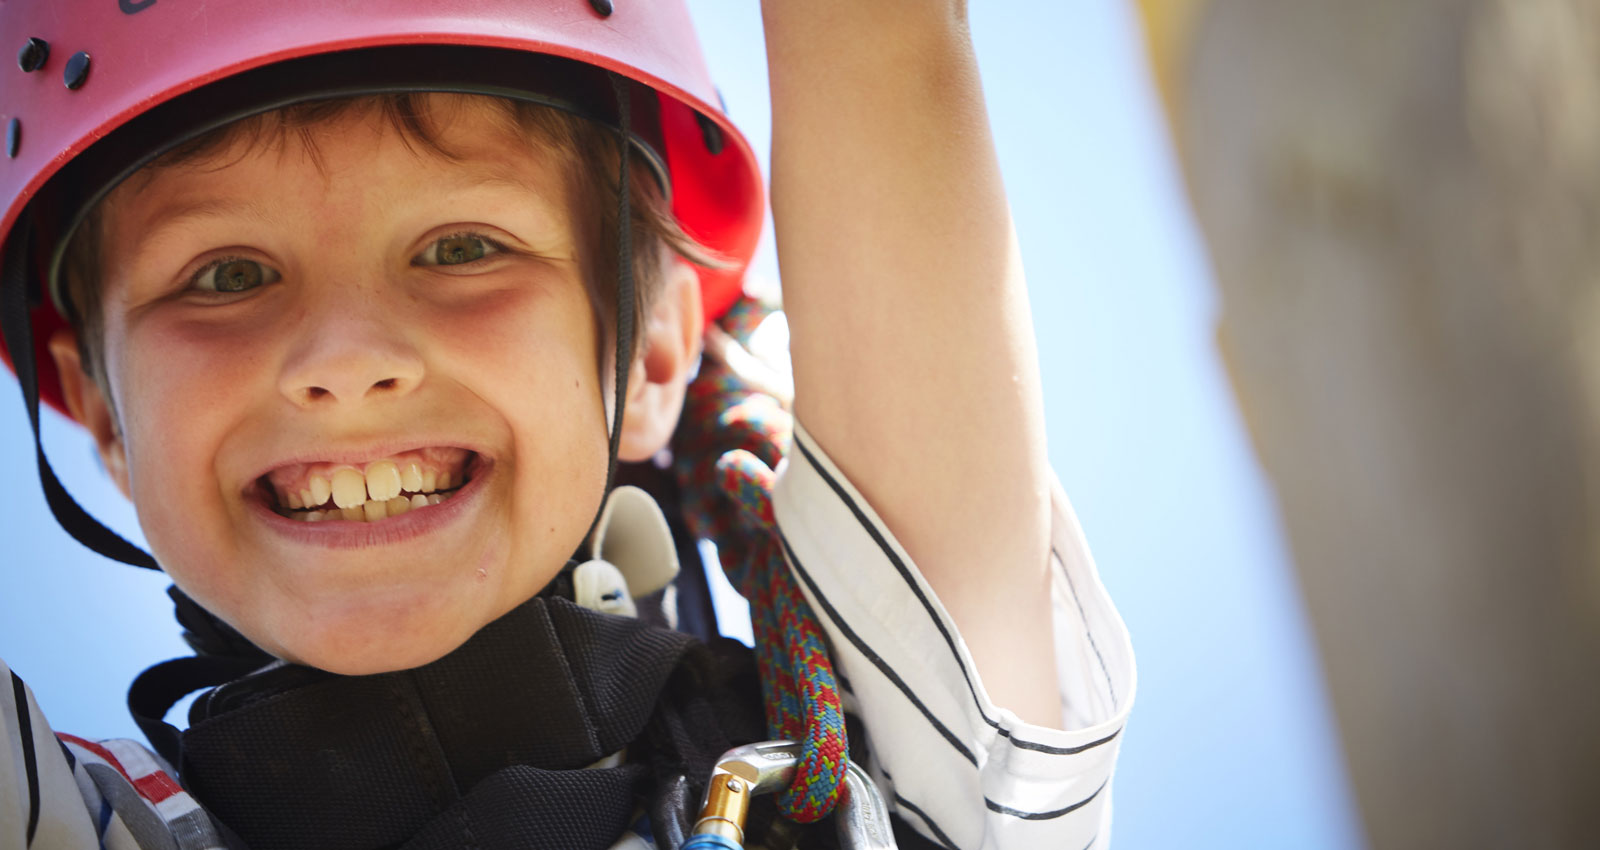 PGL Family Adventures - Family Activity Holidays - Special Offers - Discounts - Offer Codes